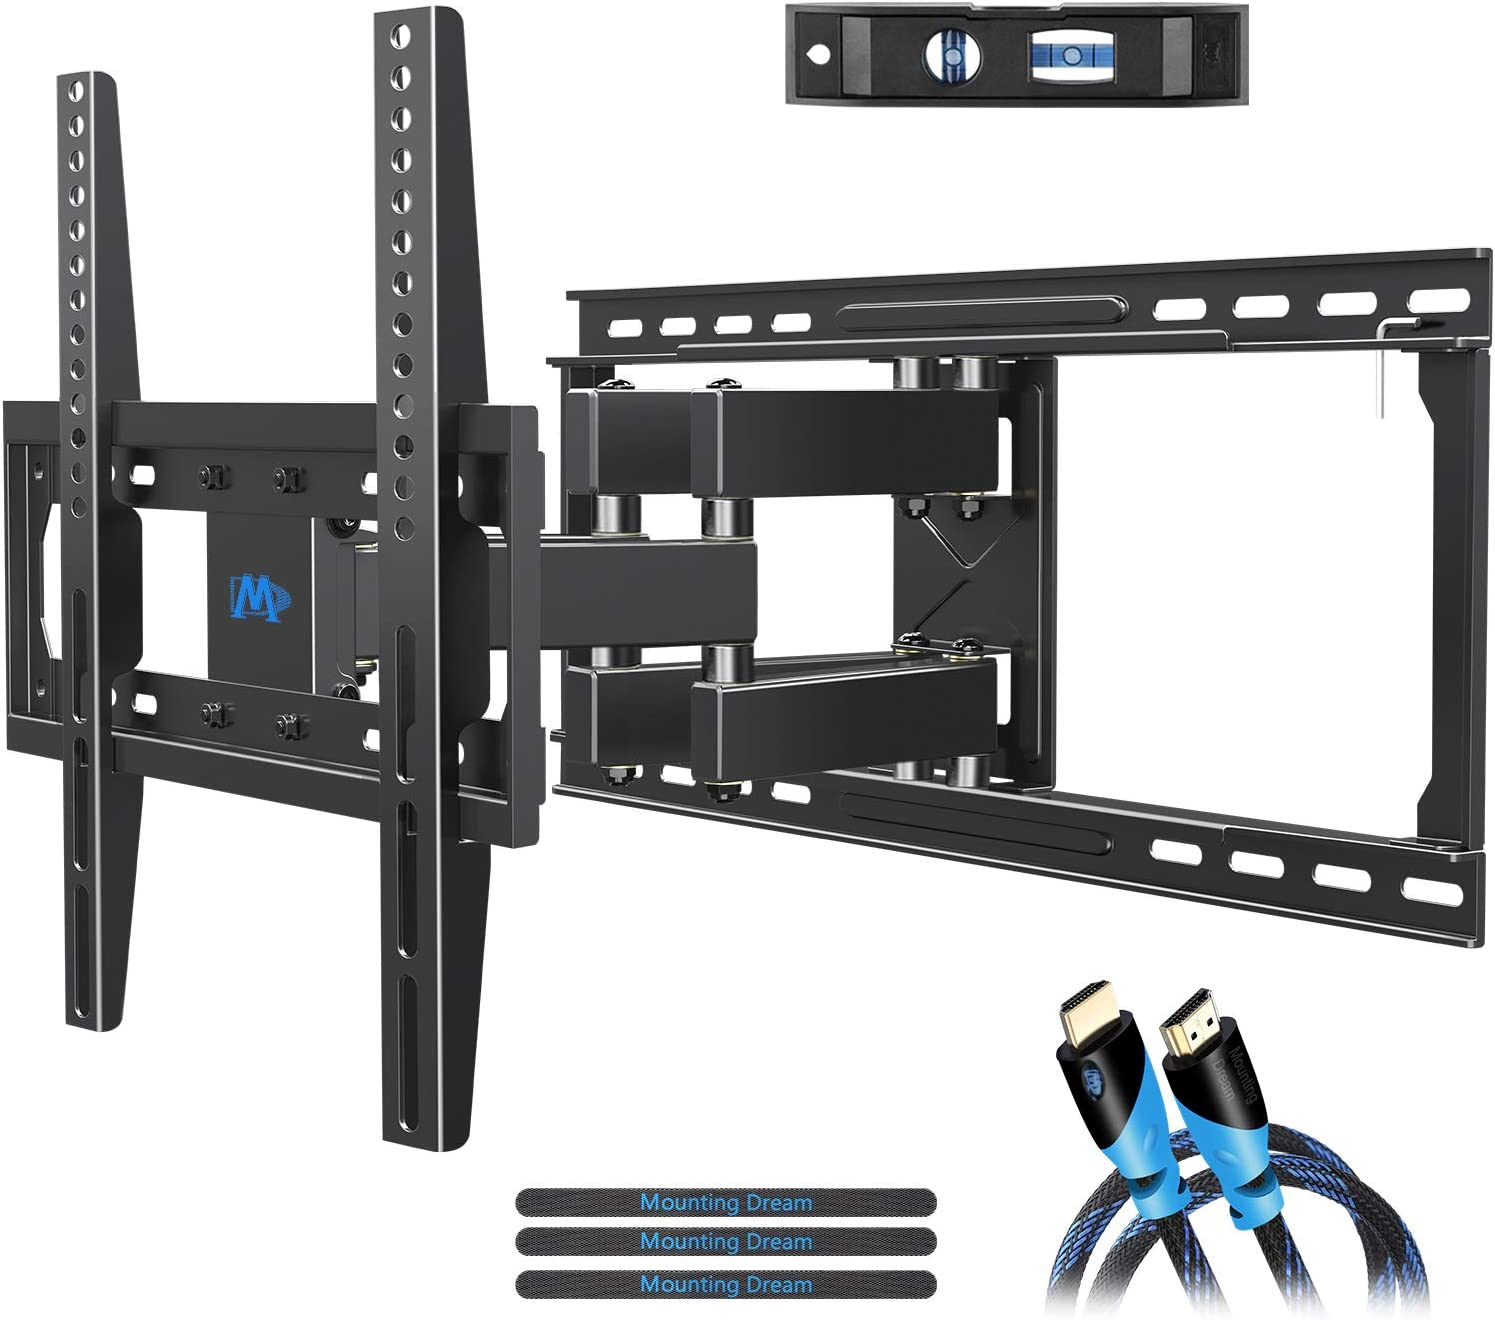 "Mounting Dream TV Mount Full Motion TV Wall Mounts for 26-55 inch, Some up to 60 inch LED, LCD Flat Screen TV, Wall Mount Bracket up to VESA 400 x 400mm 99 lbs. Fits 16"", 18"", 24"" Wood Studs MD2380-24"